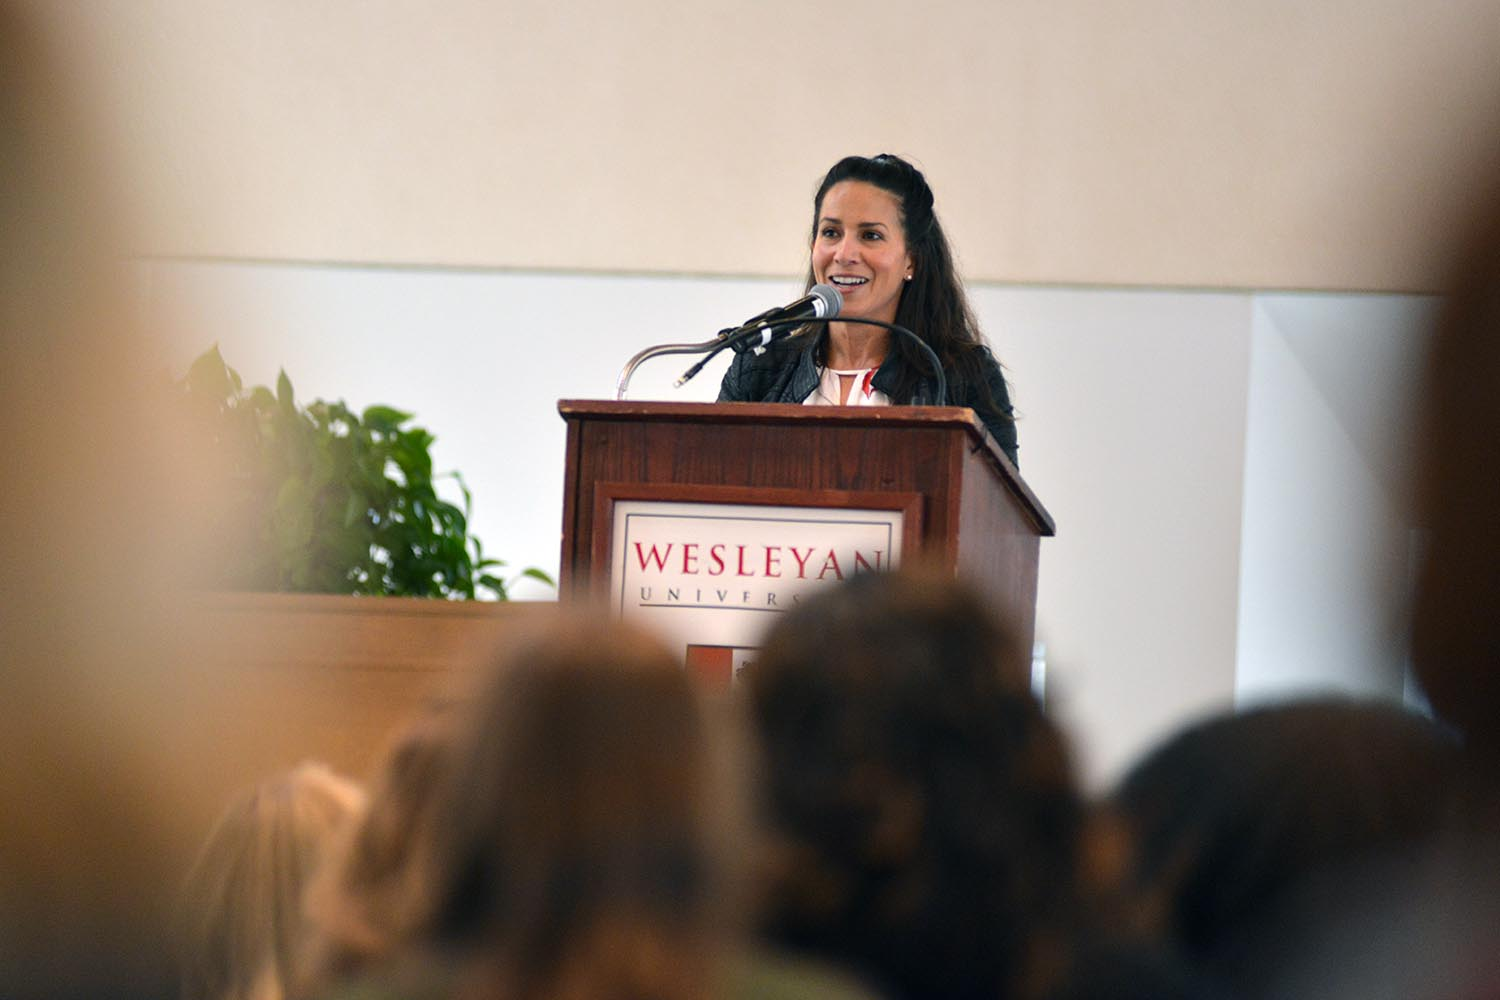 Wesleyan alumnae and New York Mets public address announcer Marysol Castro '96 delivered the WesFest Alumni Keynote Address on April 11. Castro, the first Latina public address announcer in the entire MLB, also the host of The Weekly Good on OGTV and the wildly popular CTBites Hot Dish podcast. In 2010, Castro anchored weather at CBS's The Early Show. She spent two years at ESPN as a host and sideline reporter for the Little League World Series, Invictus Games, and Premier Boxing Champions.